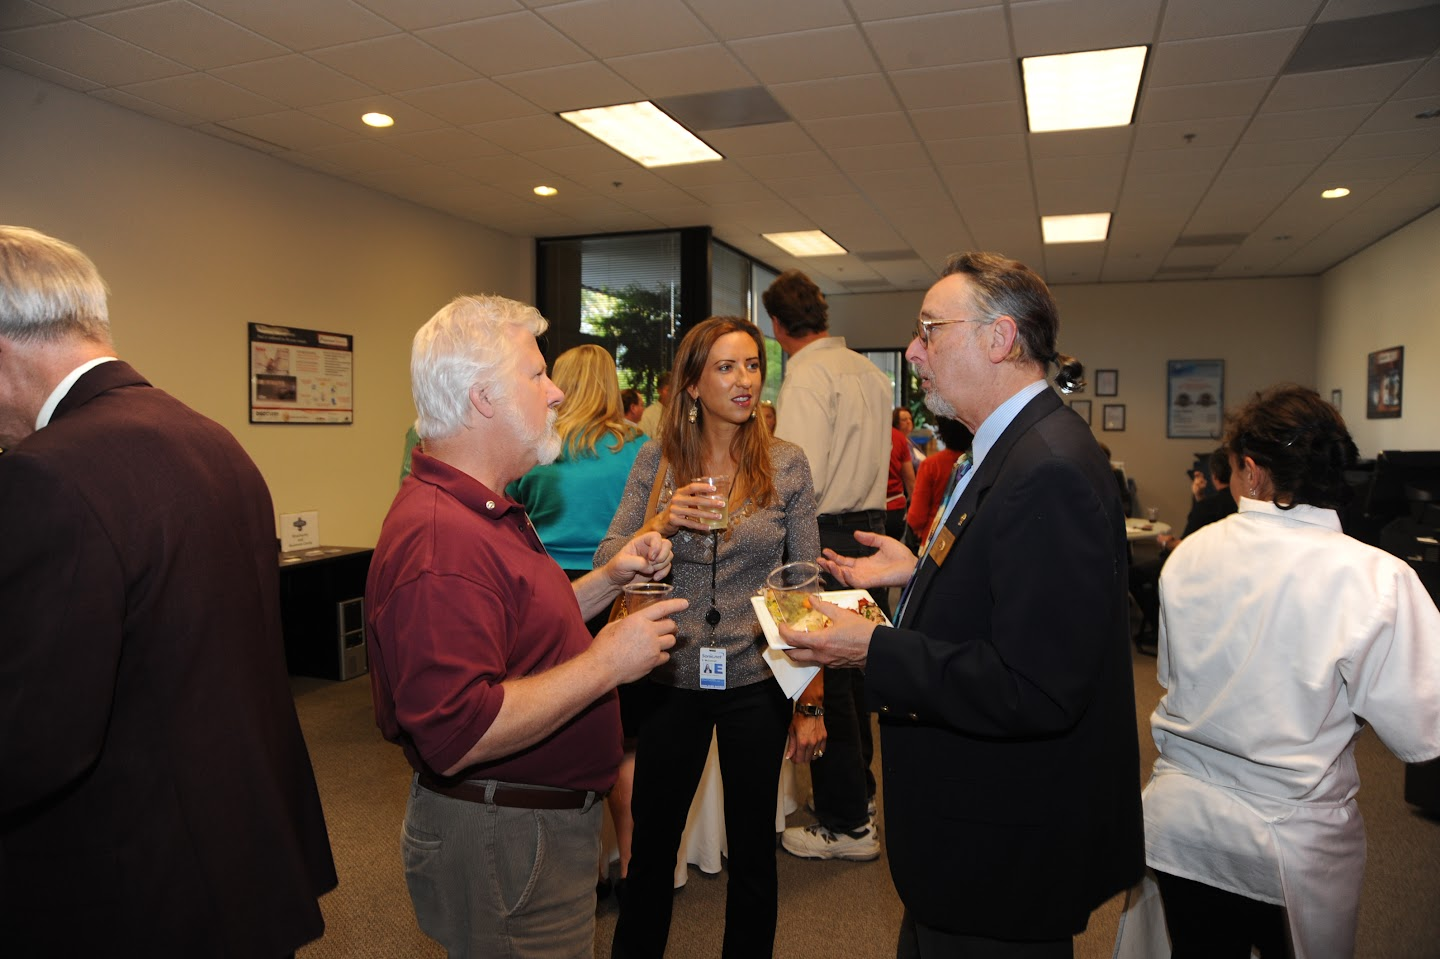 Rotary Means Business at Discovery Office with Rosso Pizzeria - DSC_6807.jpg